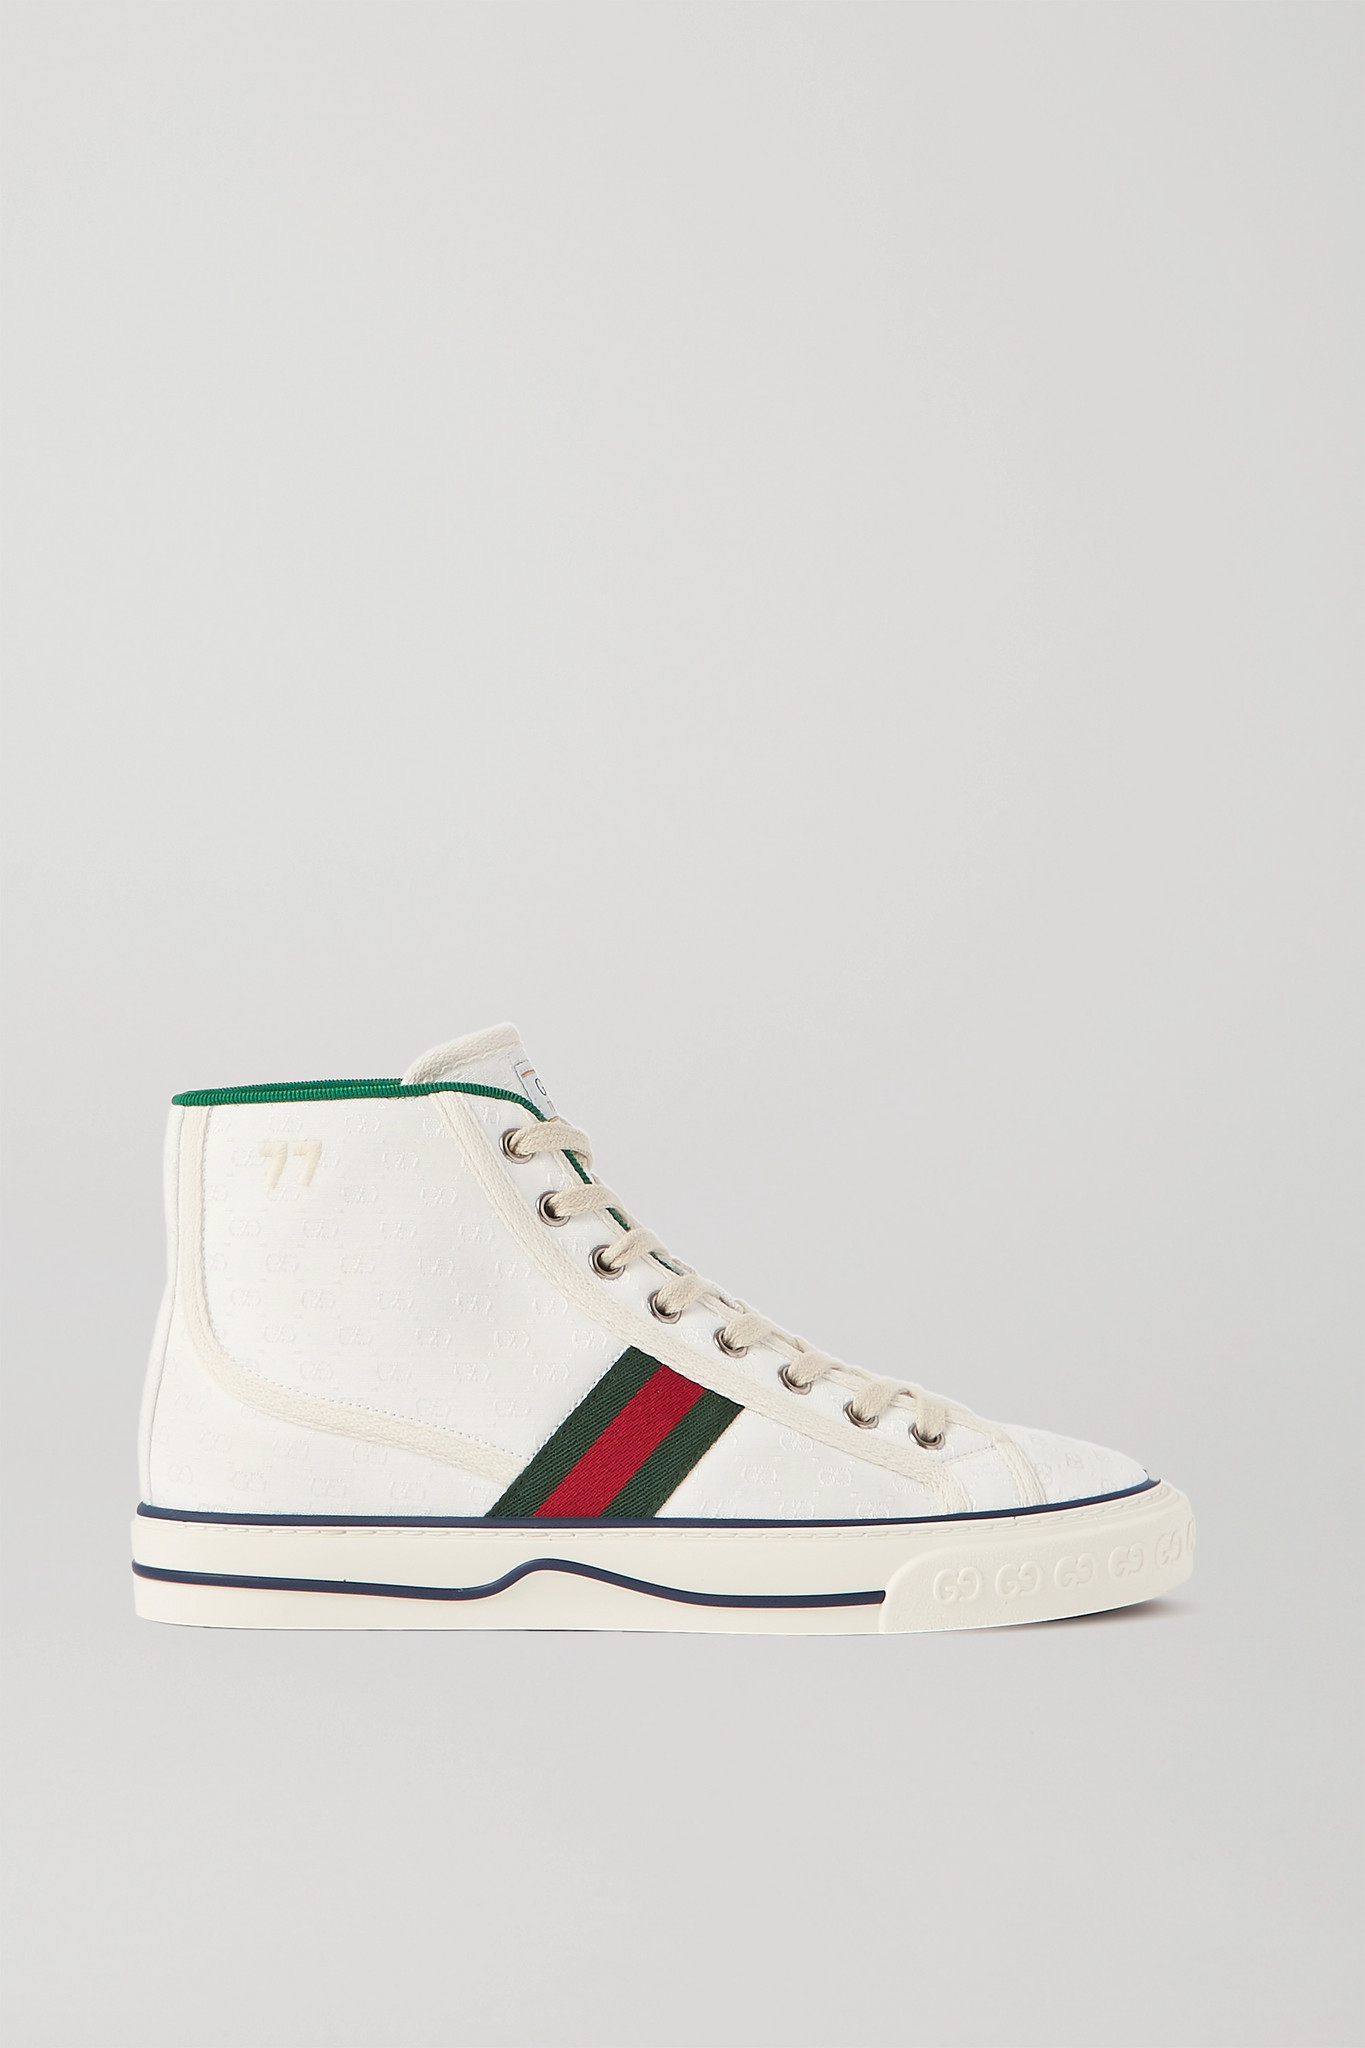 GUCCI - Tennis 1977 Logo-embroidered Printed Canvas High-top Sneakers - White - IT34